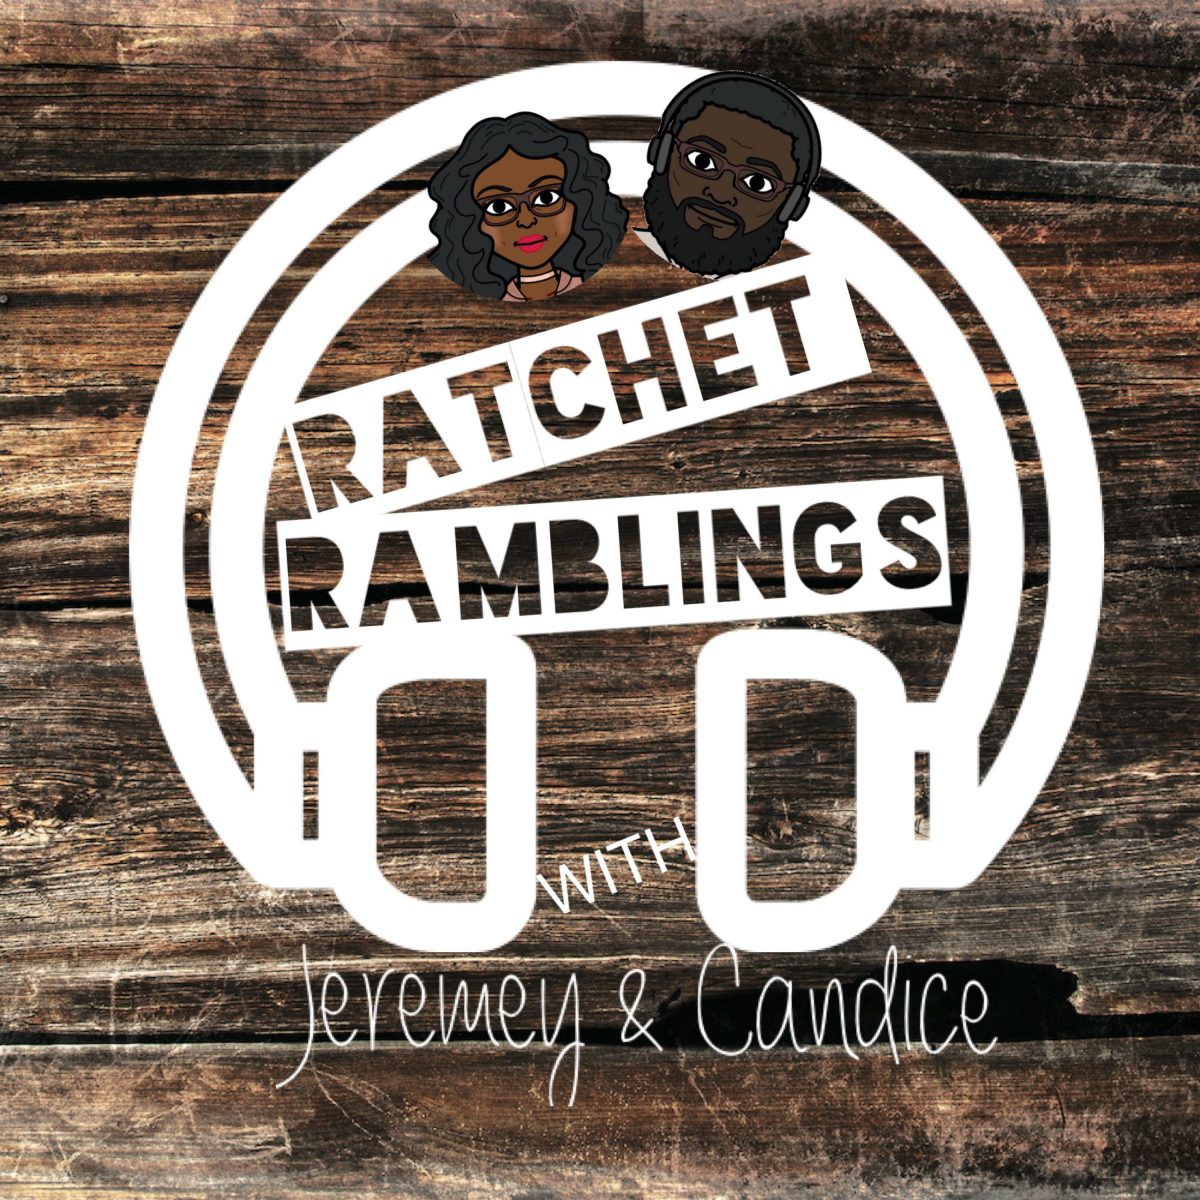 Ratchet Ramblings Episode 19: It Be Ya Own Spouse